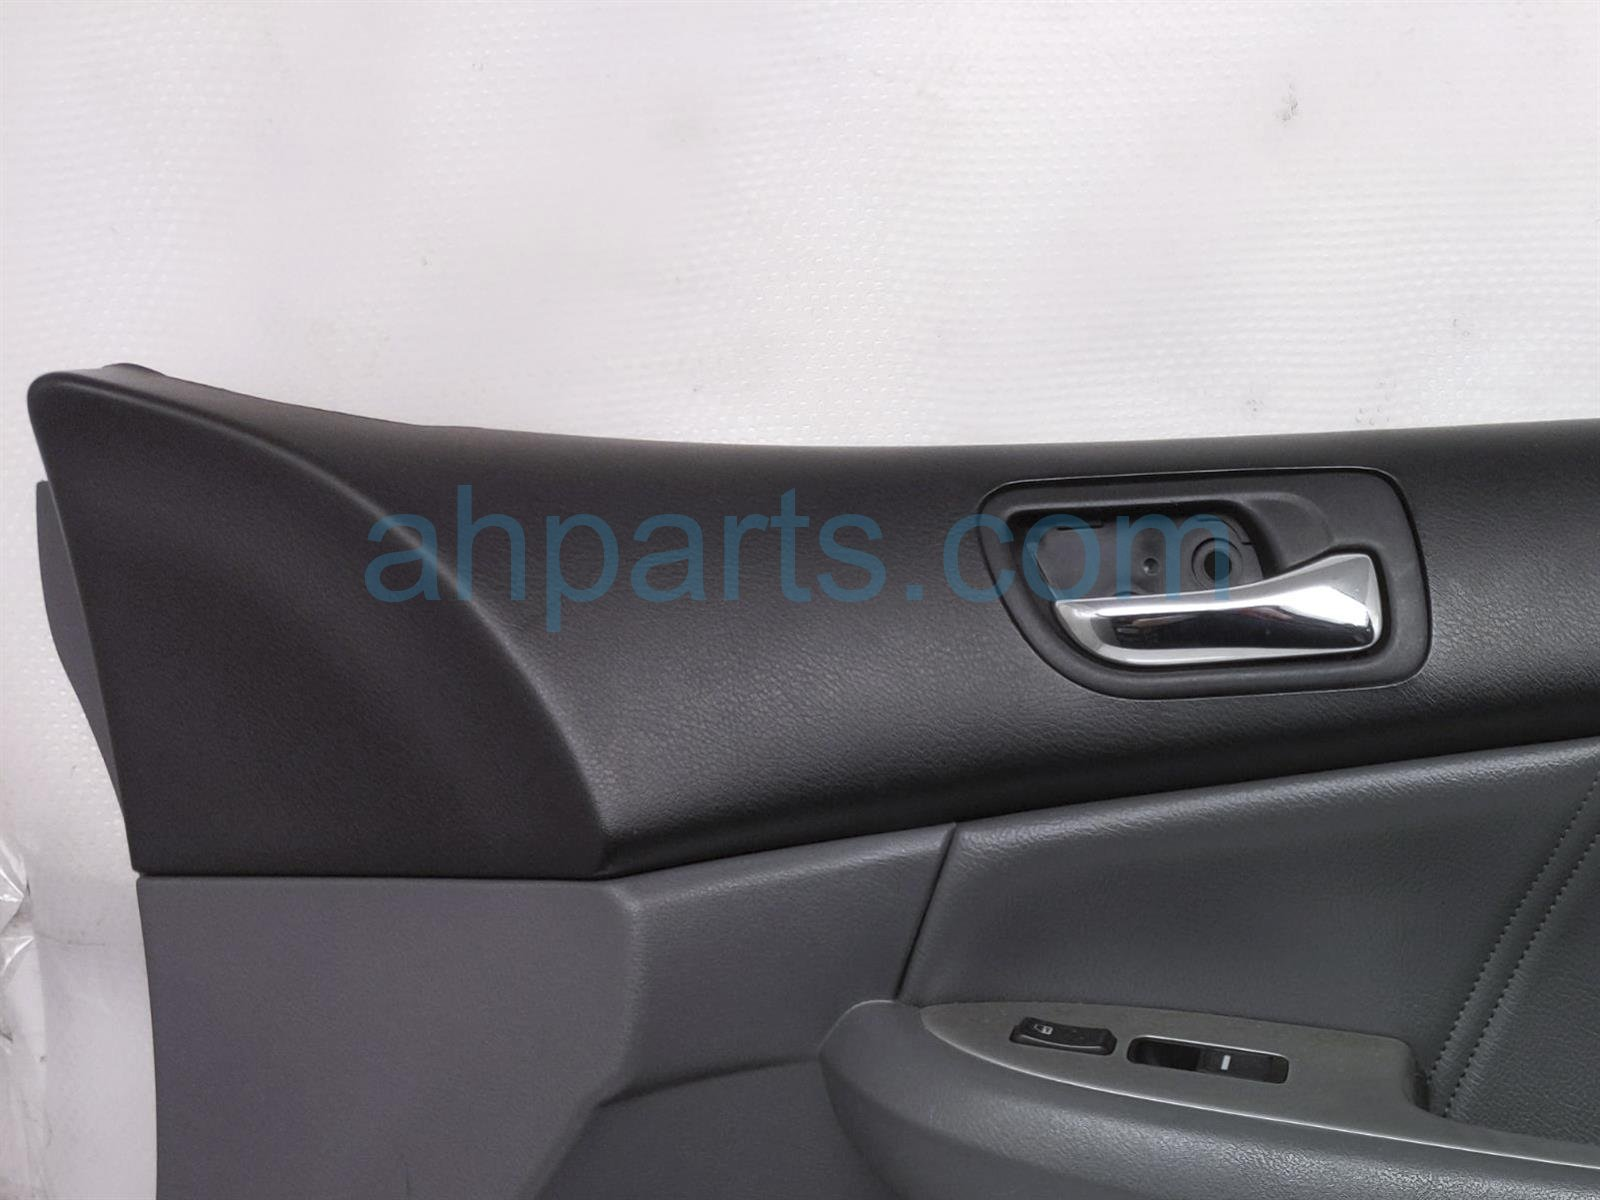 2007 Honda Accord Trim / Liner Front Passenger Interior Door Panel   Grey 4dr 83500 SDB A91 Replacement